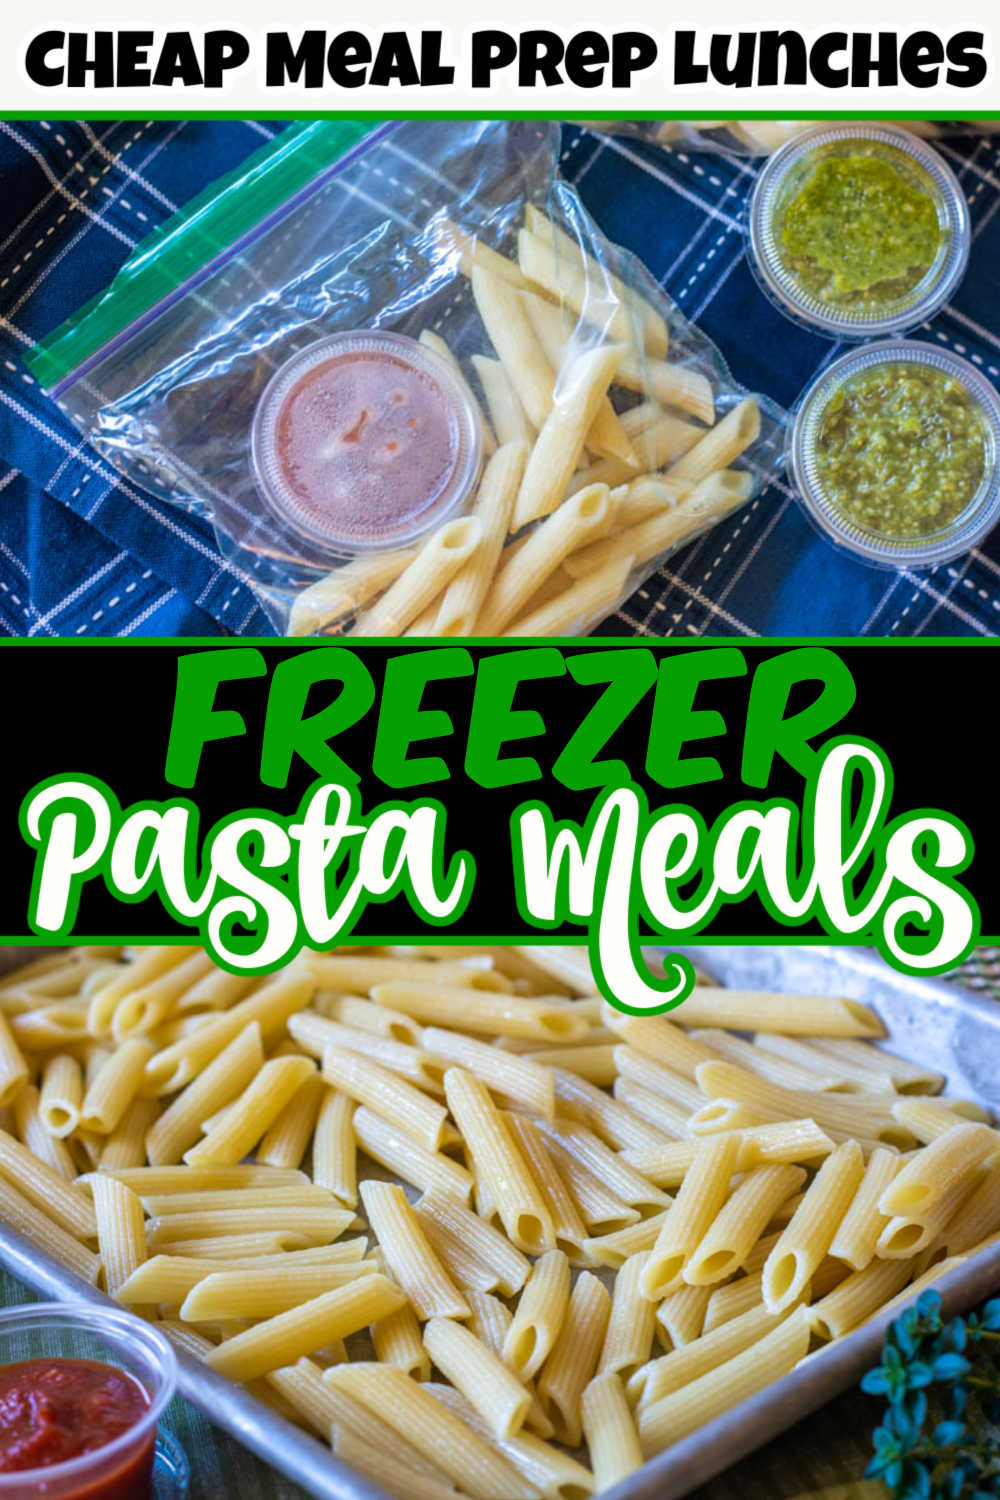 Save a TON of Money and Time by making these make-ahead freezer pasta meals. Use different containers for sauces and reheat them at work for a healthy homemade lunch that costs less than $0.25 to make. Insanely inexpensive meal prep! #pasta #freezermeal #frugal